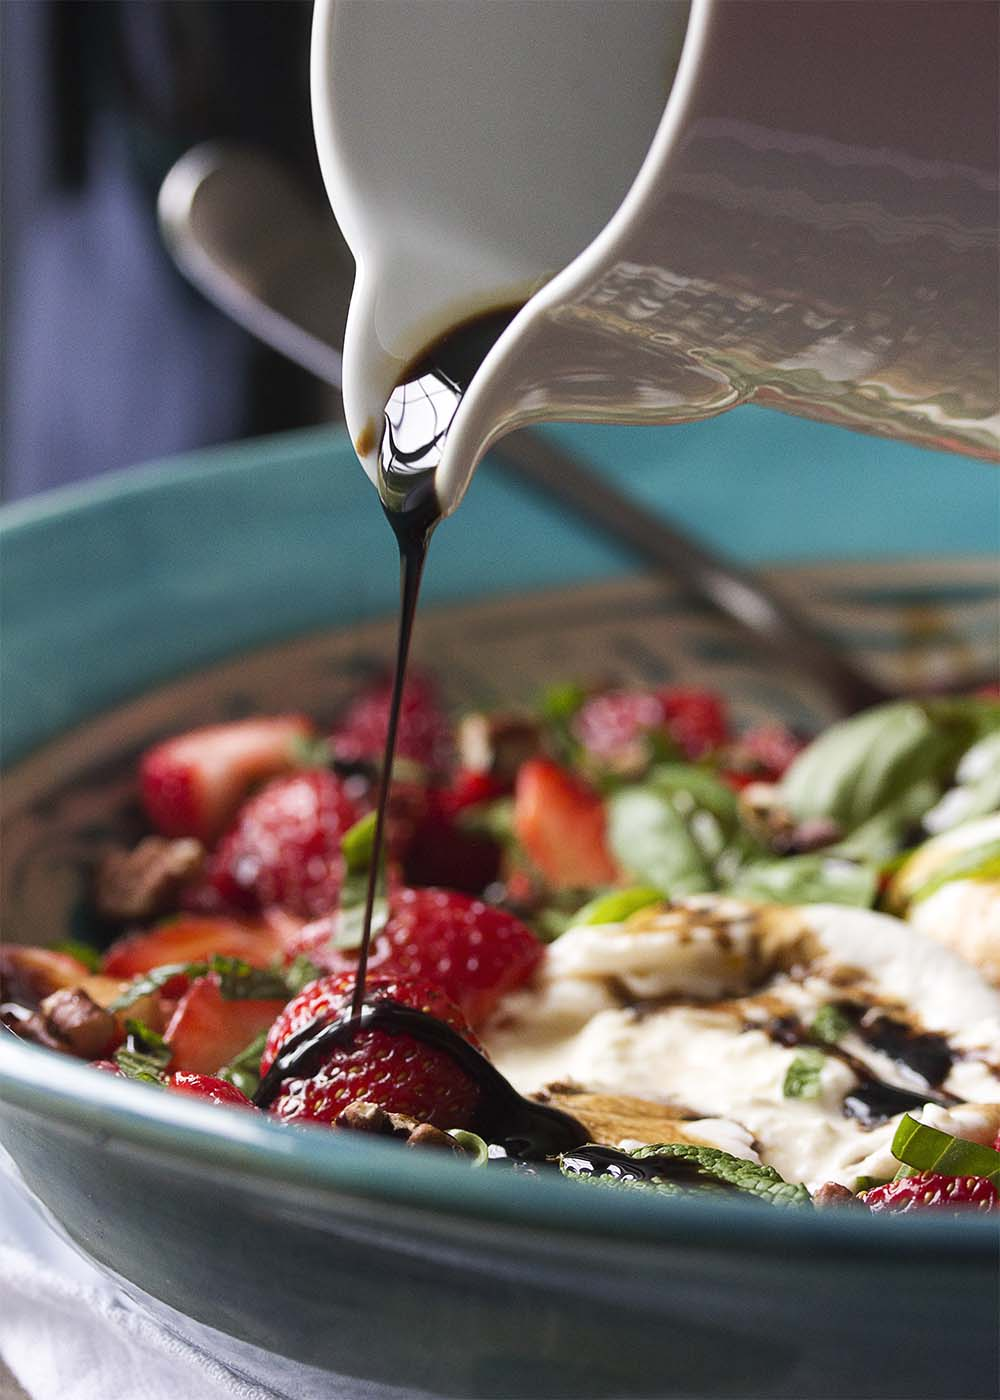 A thin stream of balsamic glaze pouring down from a cup onto a strawberry in the serving bowl of burrata salad.